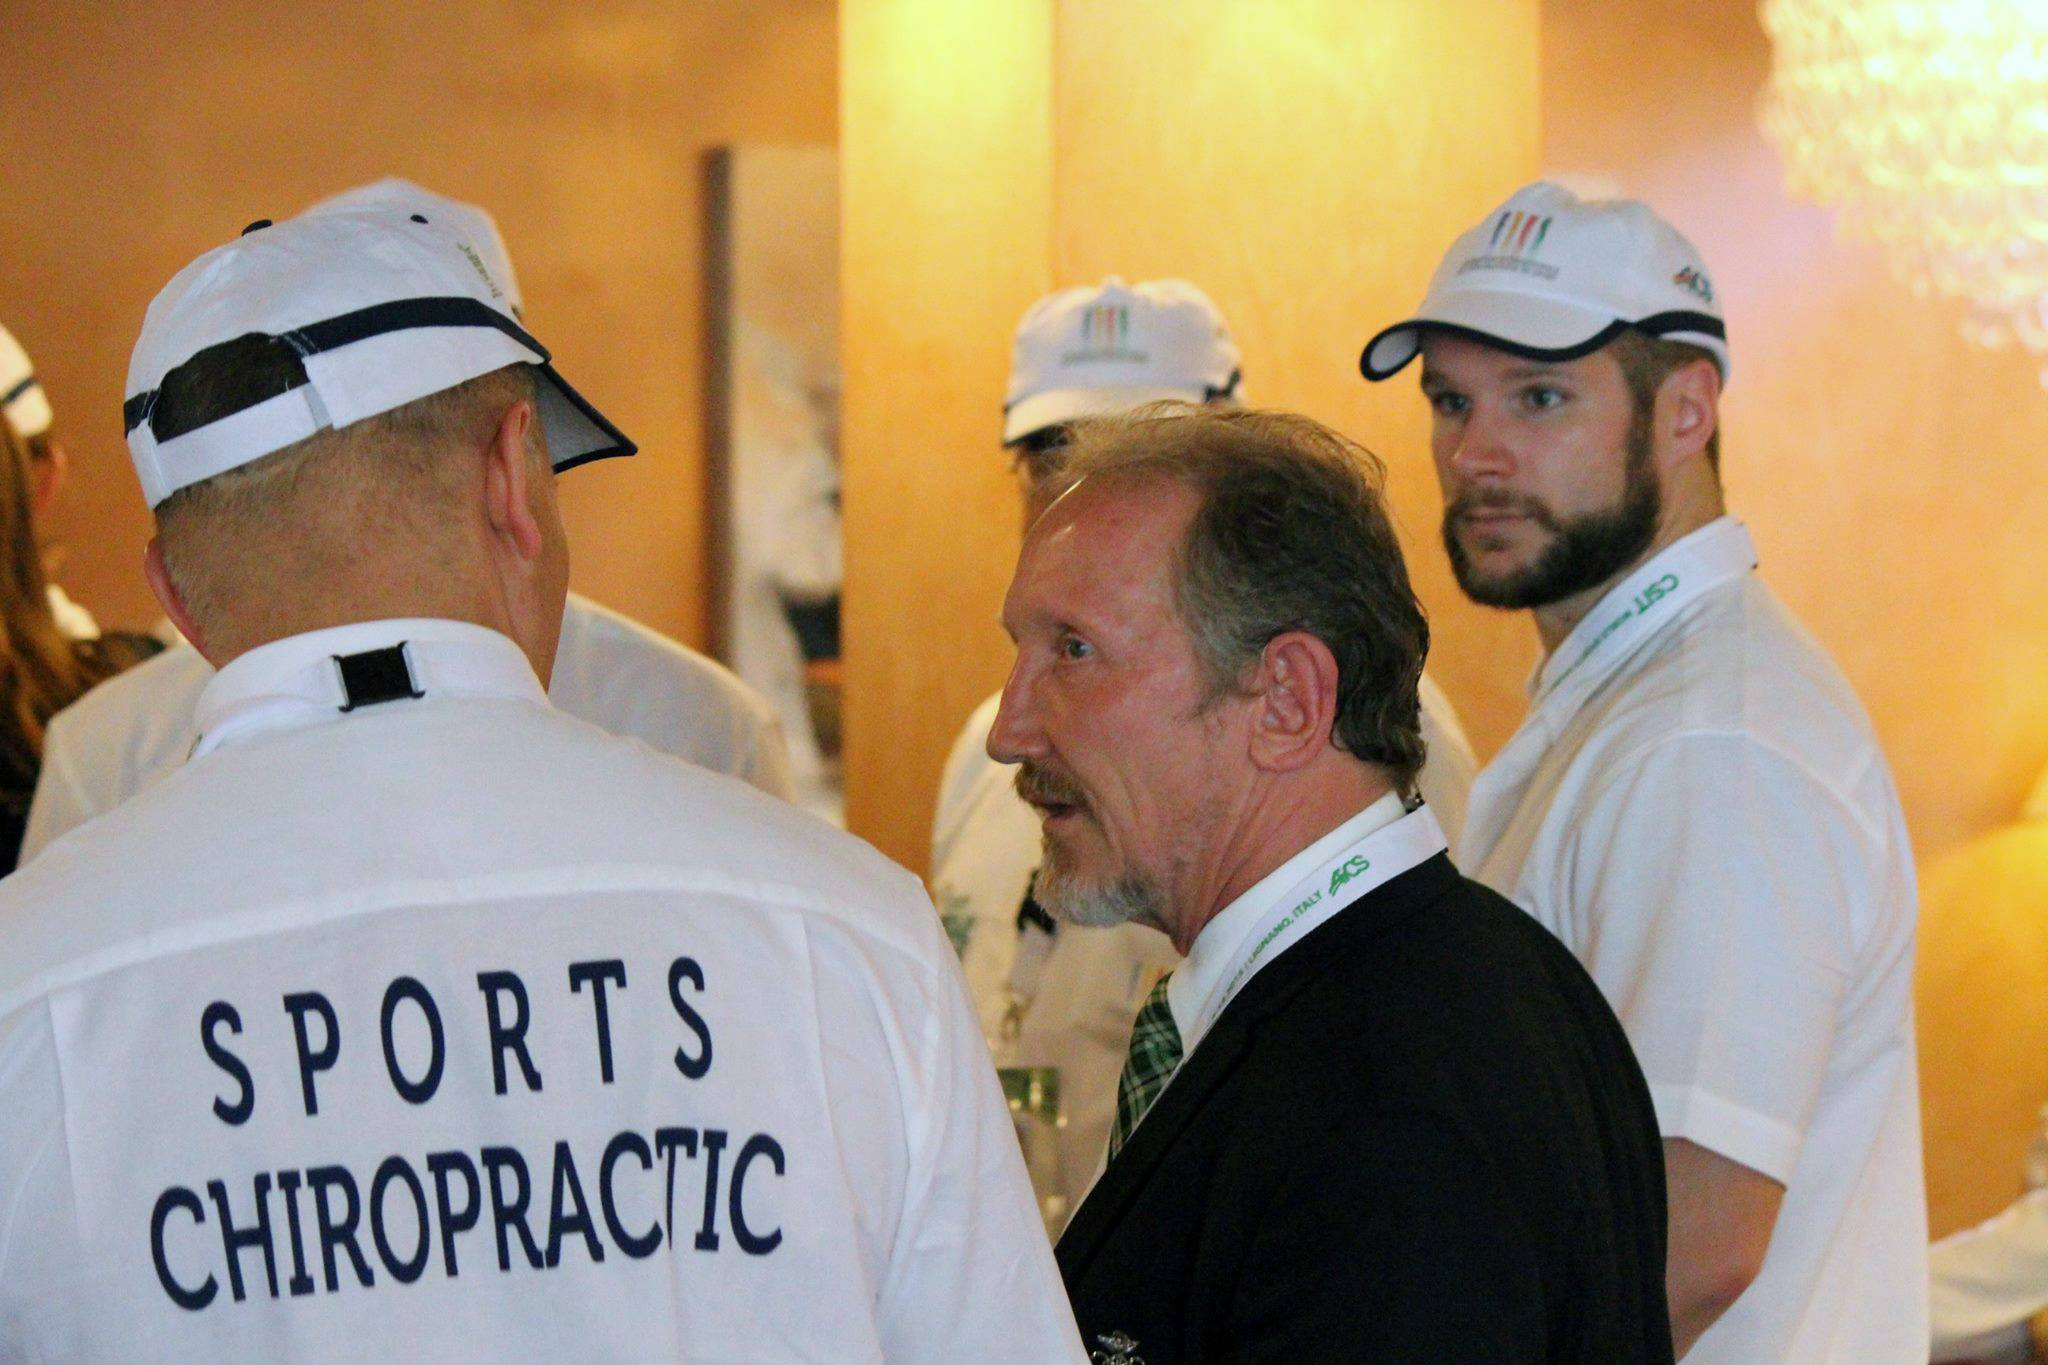 Dr. Ray speaking to his team of sports chiropractors